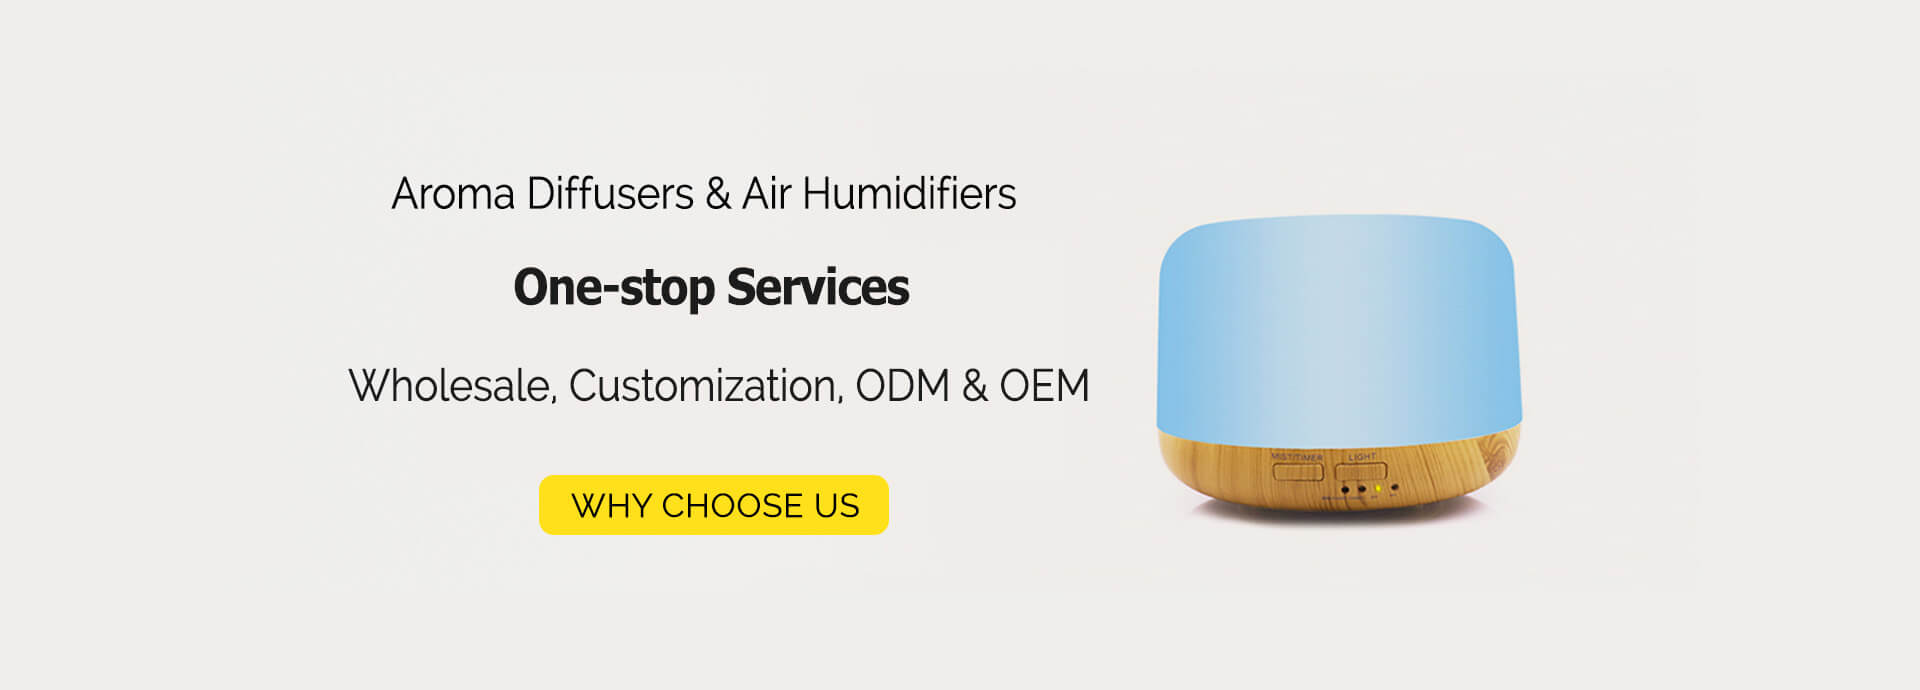 One-stop Essential Oil Diffusers Wholesale, Customization and OEM Services